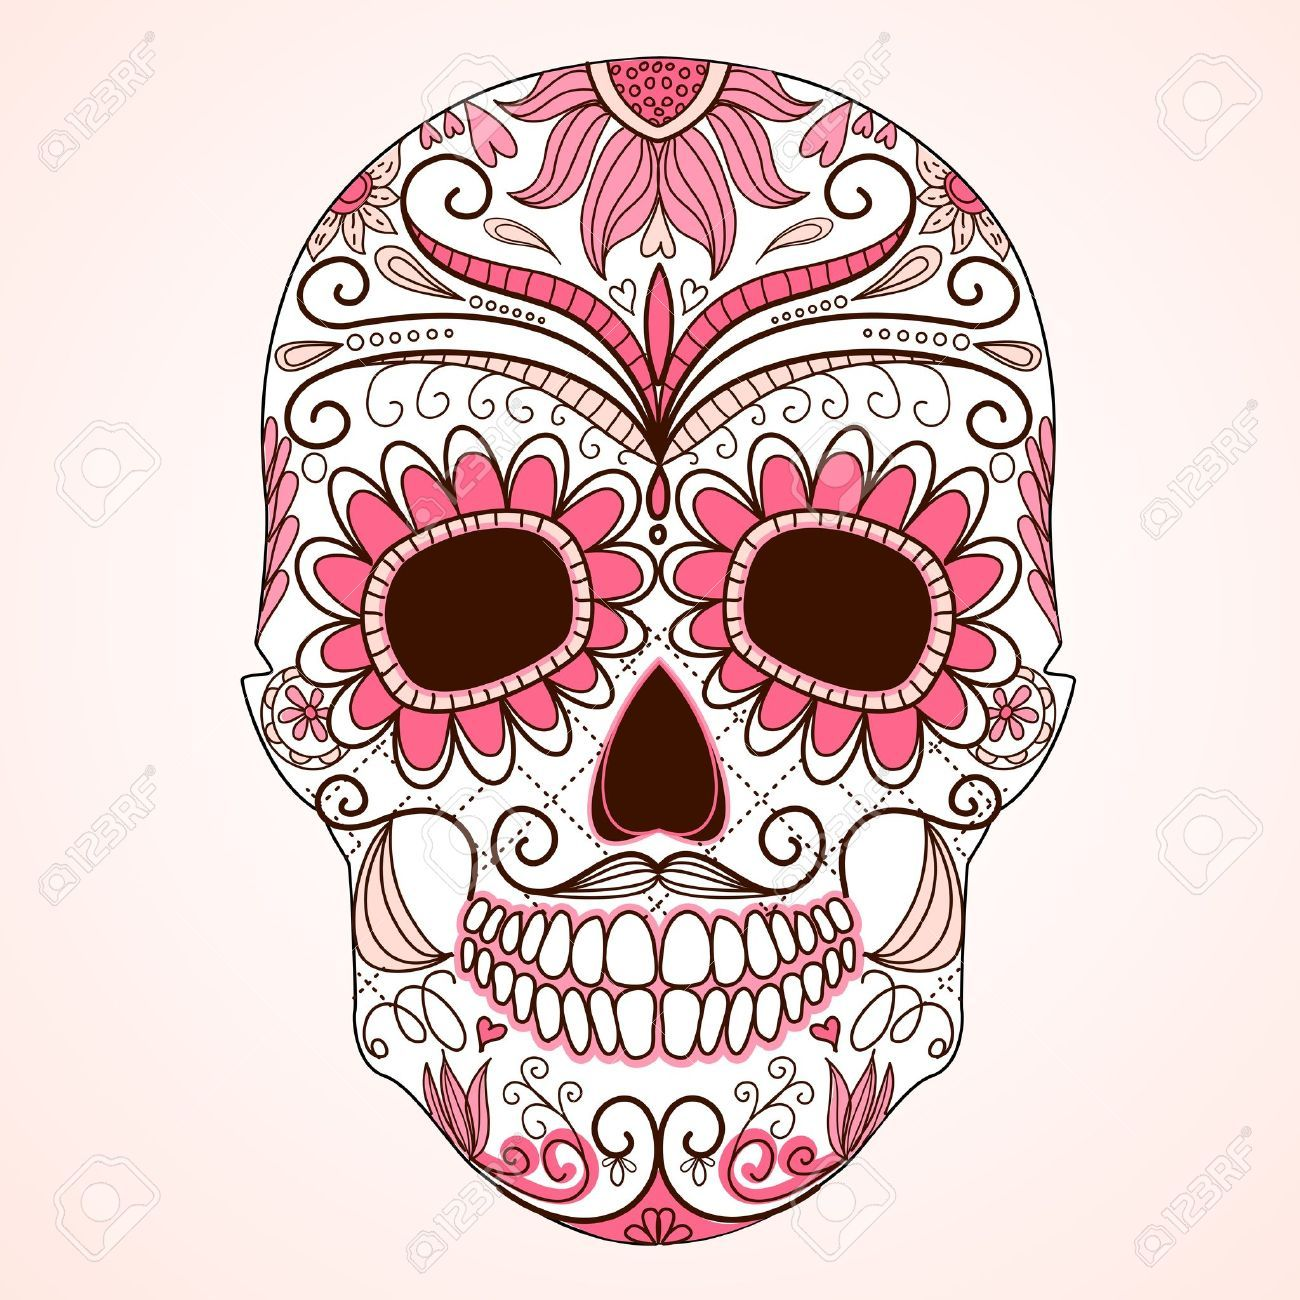 Day of the dead colorful skull with floral ornament tatoo tattoo